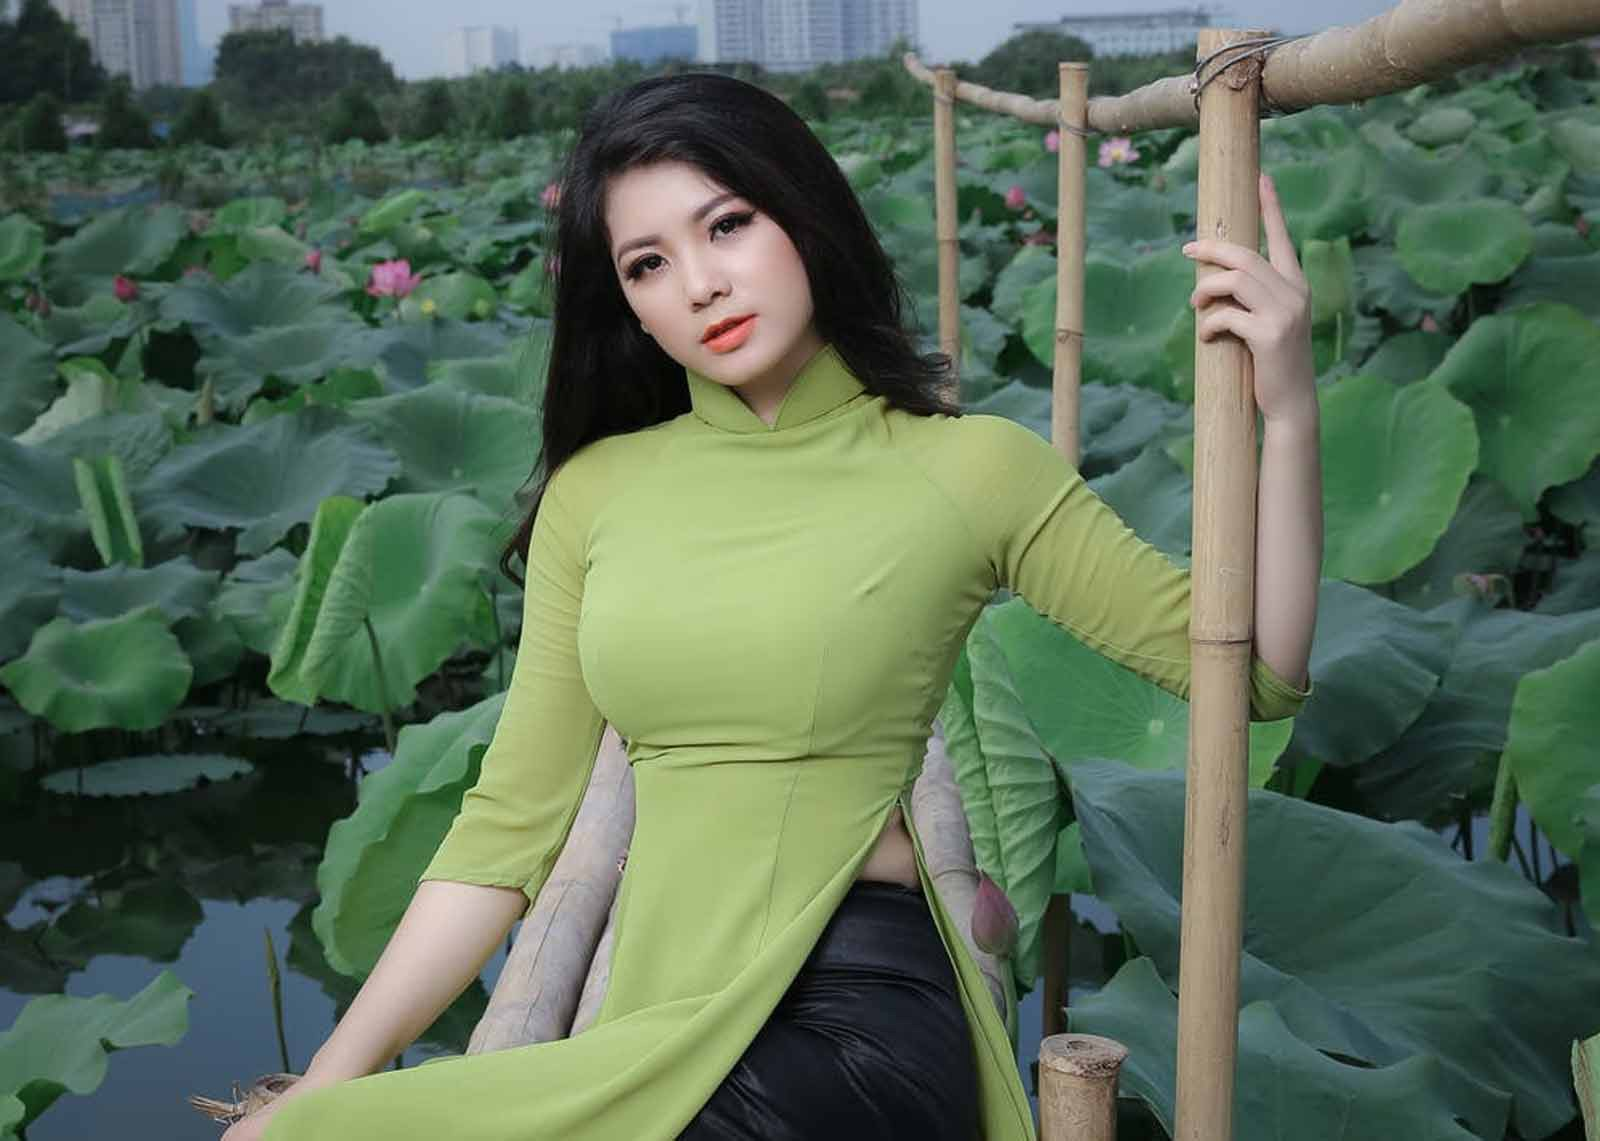 paras Thaimaa Dating